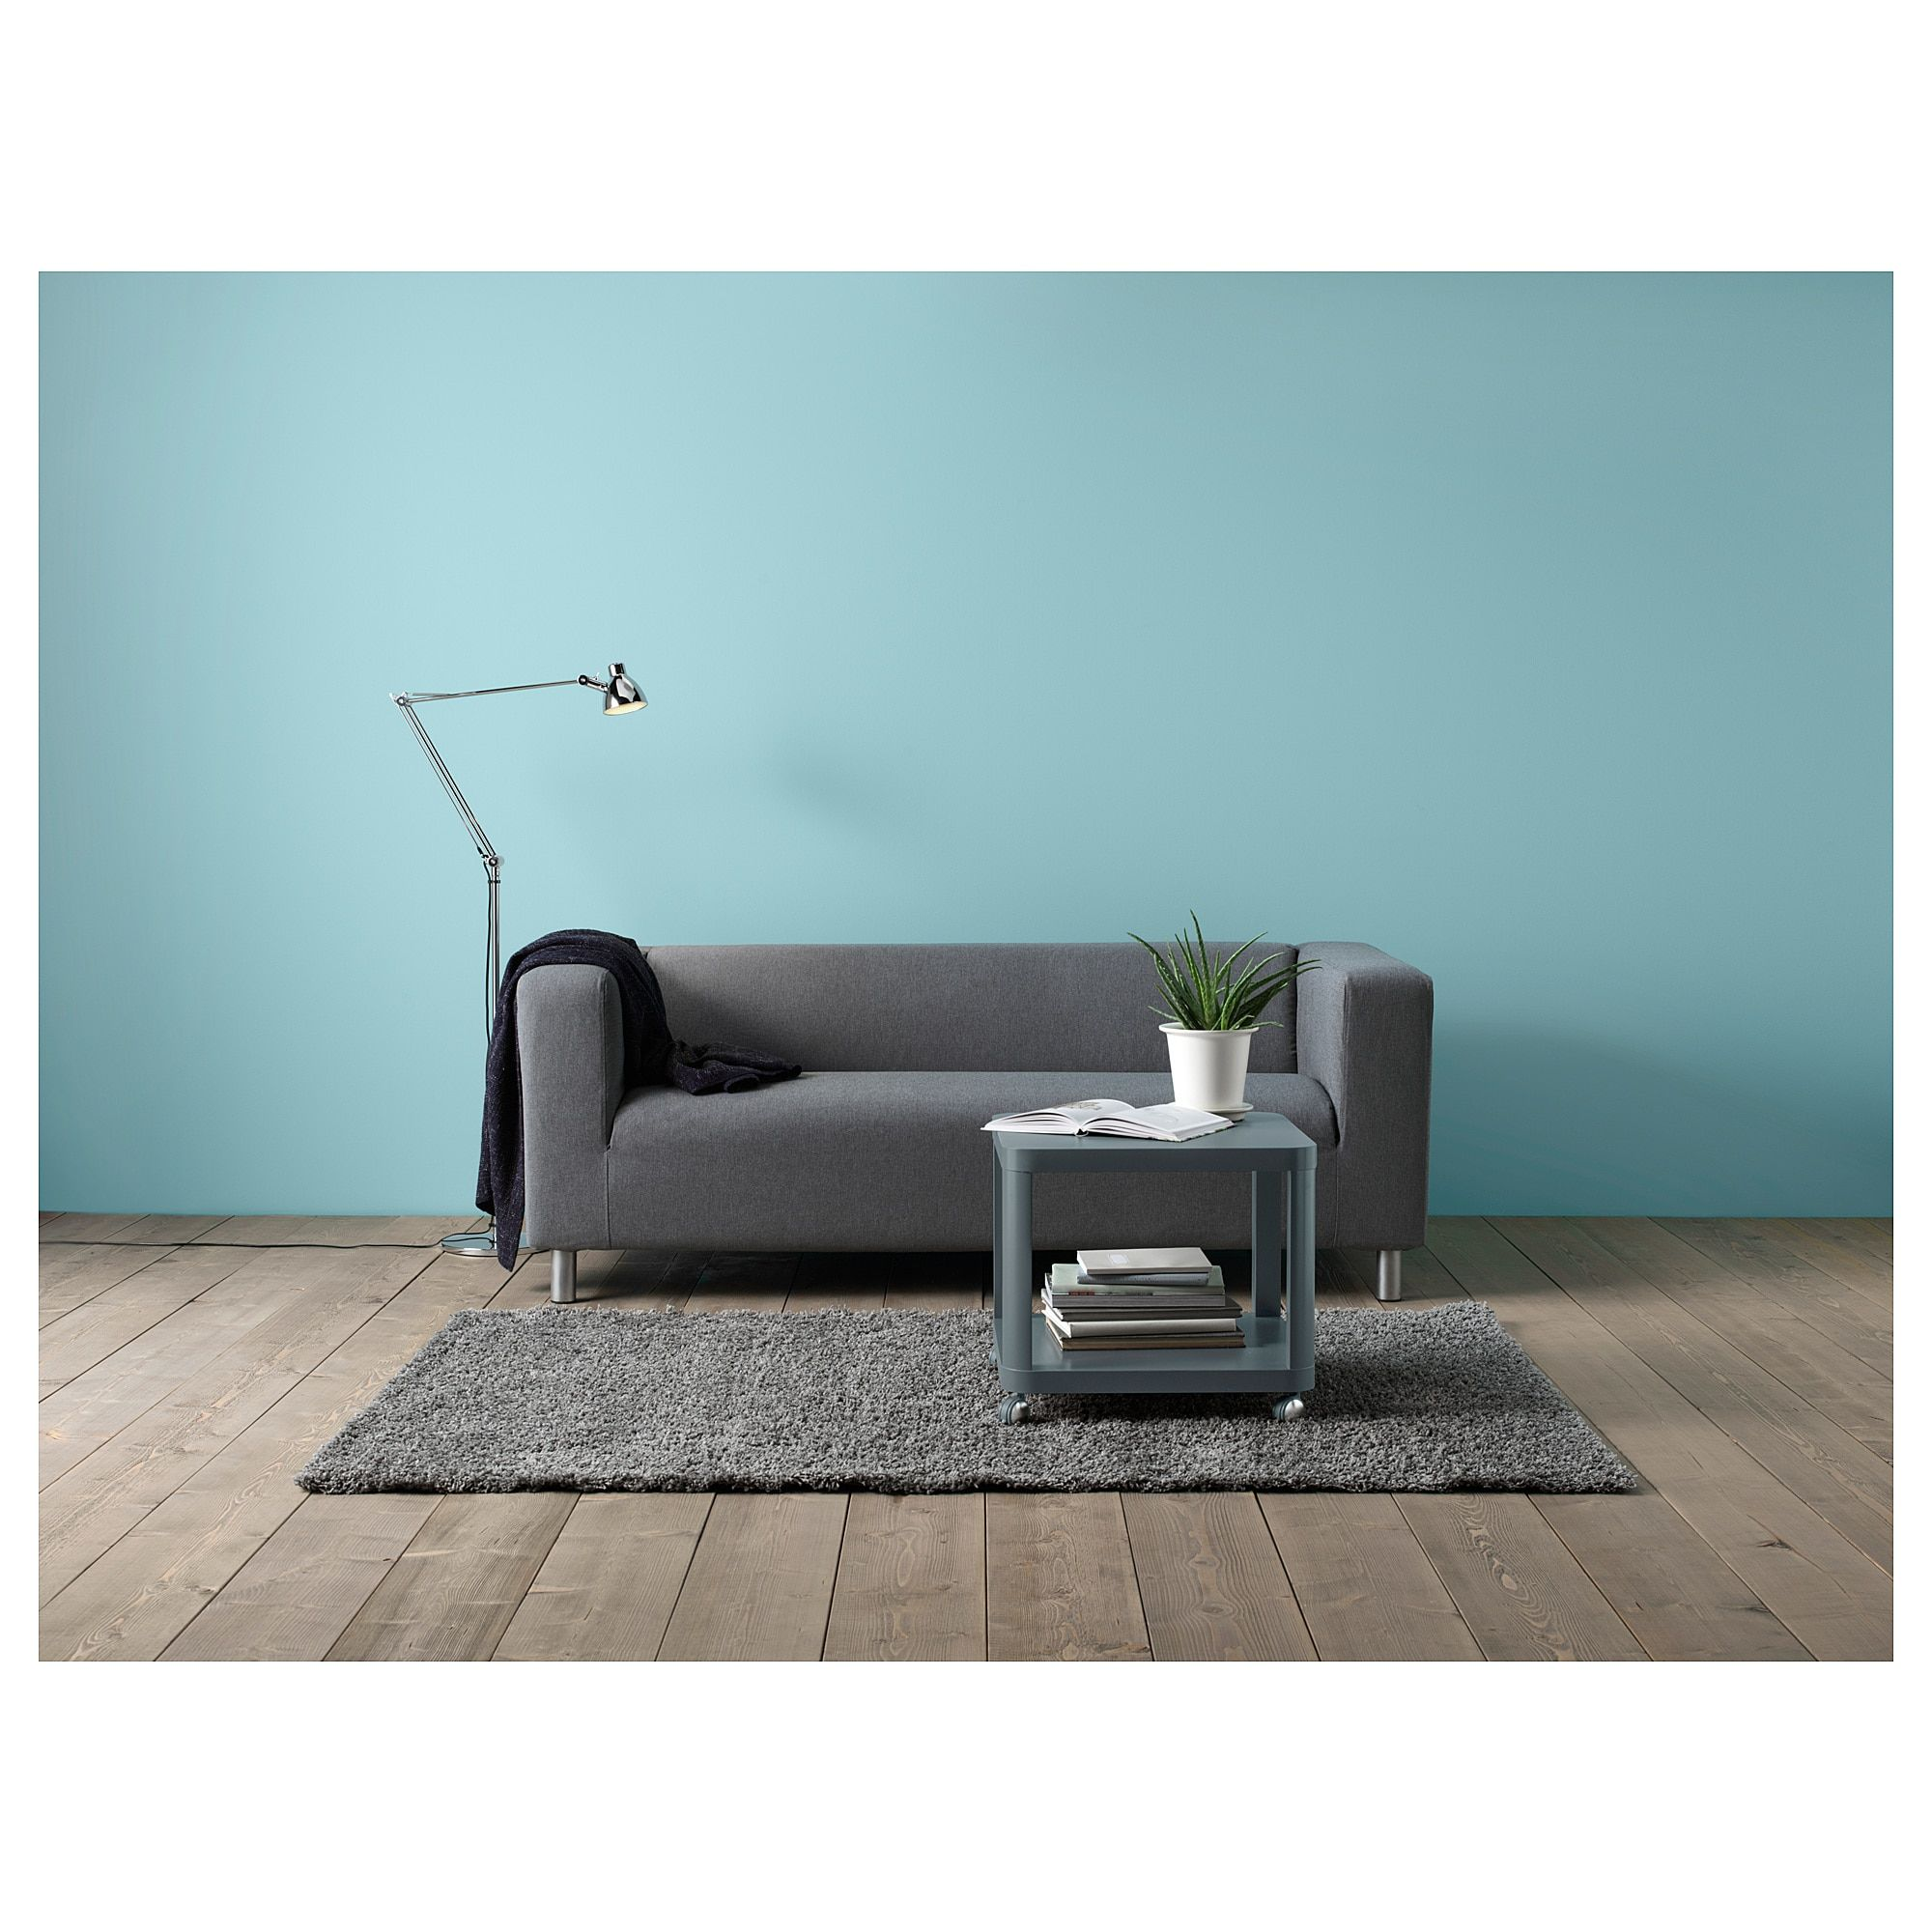 Klippan 2er Sofa Vissle Grau In 2019 Home Improvement Loveseat